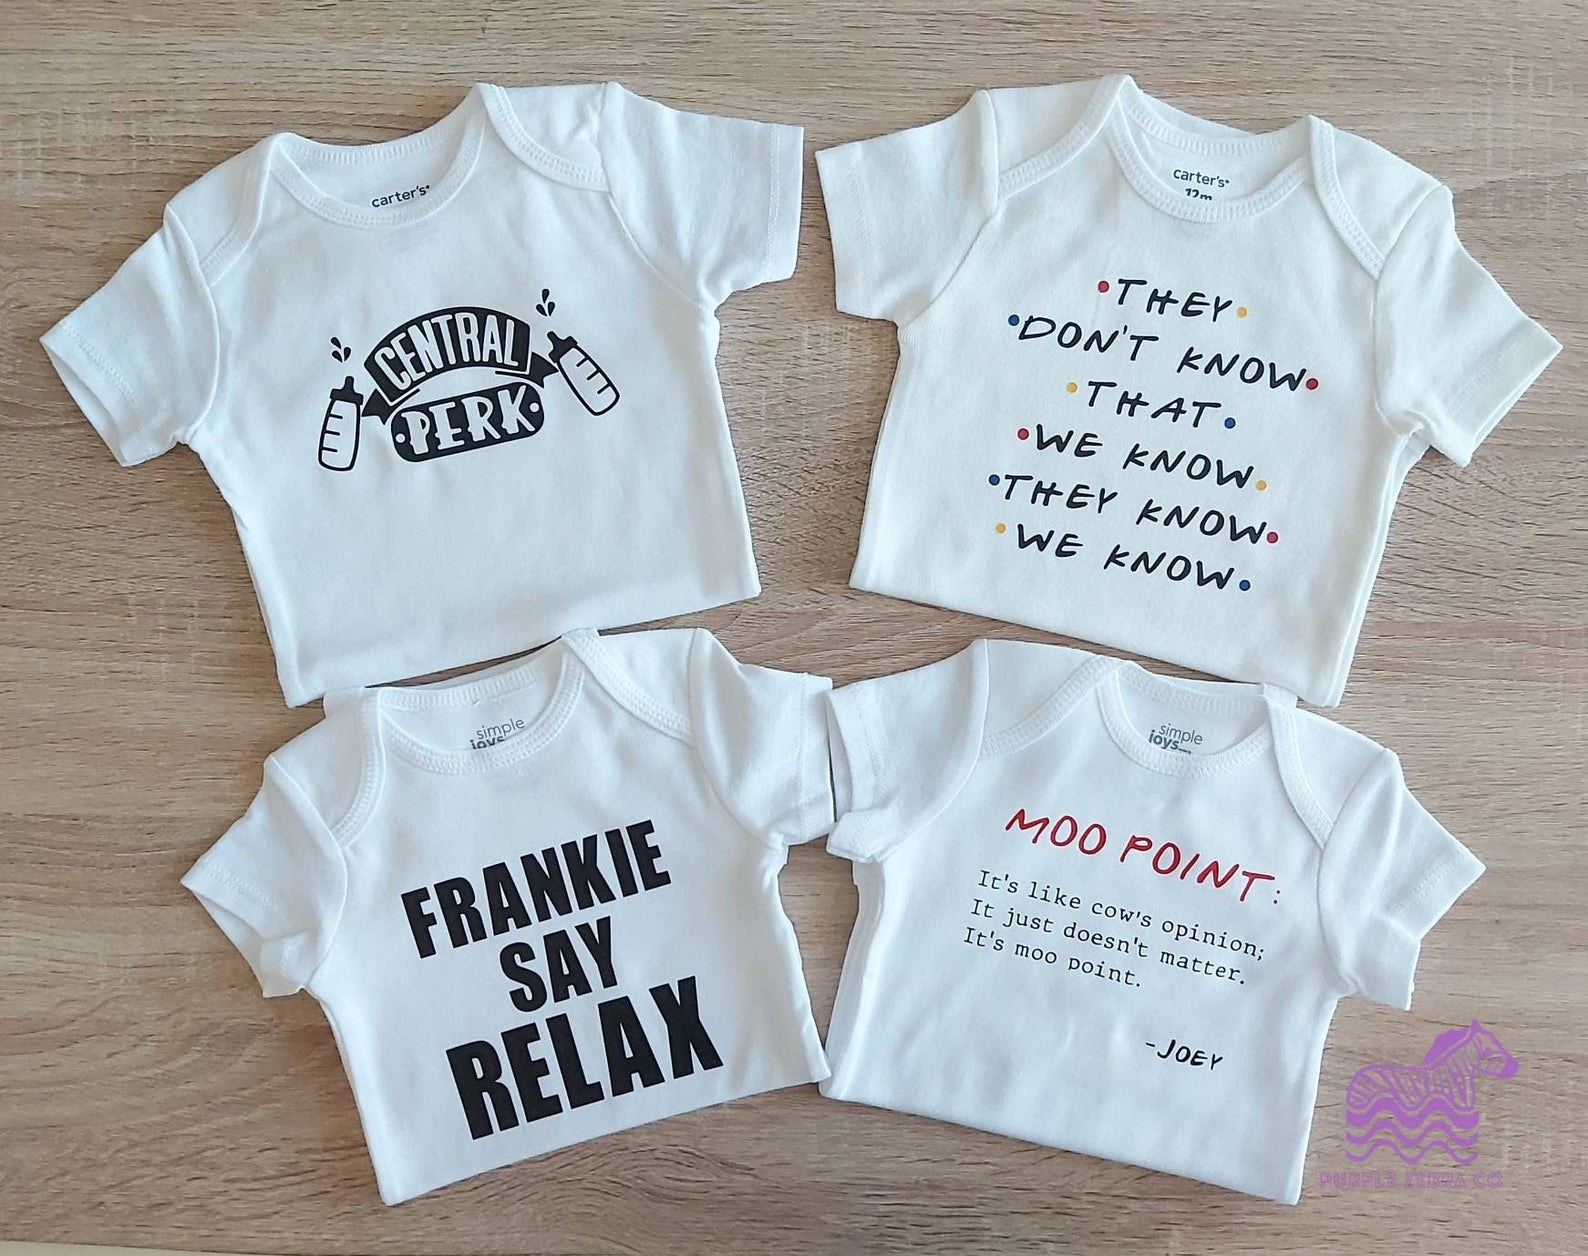 onesies that say central perk with two milk bottles frankie say relax they don't know that we know they know we know and moo point it's like cow's opinion it just doesn't matter it's moo point joey